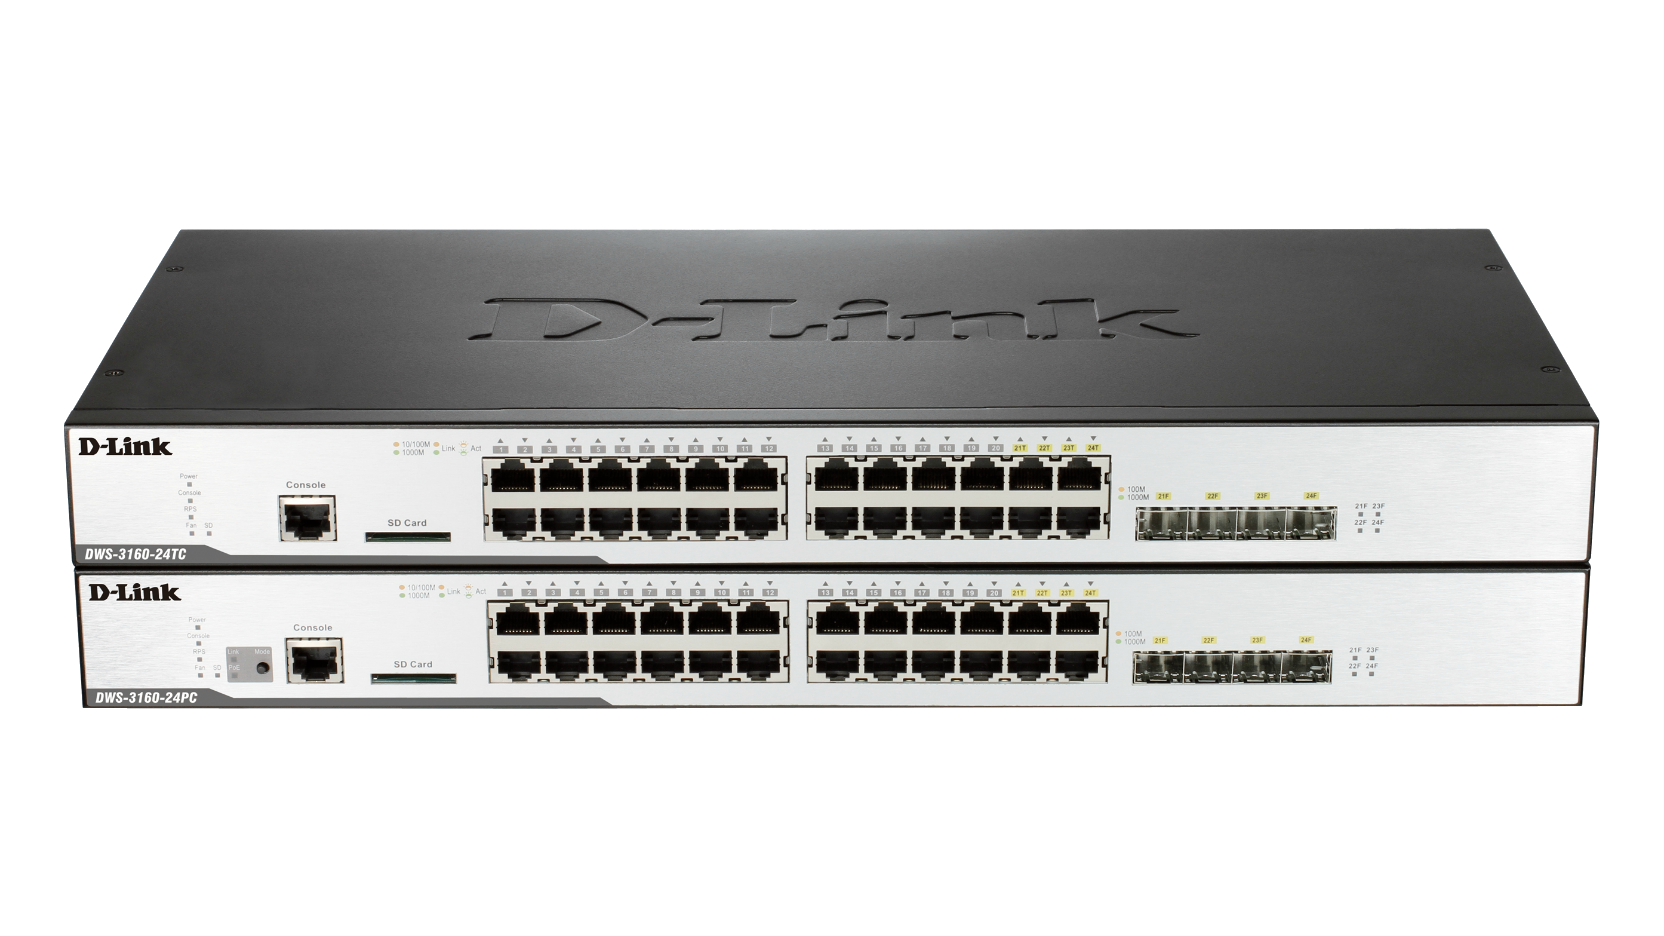 D-Link DWS-3160-24PC Wireless Access Point Drivers for Windows 7